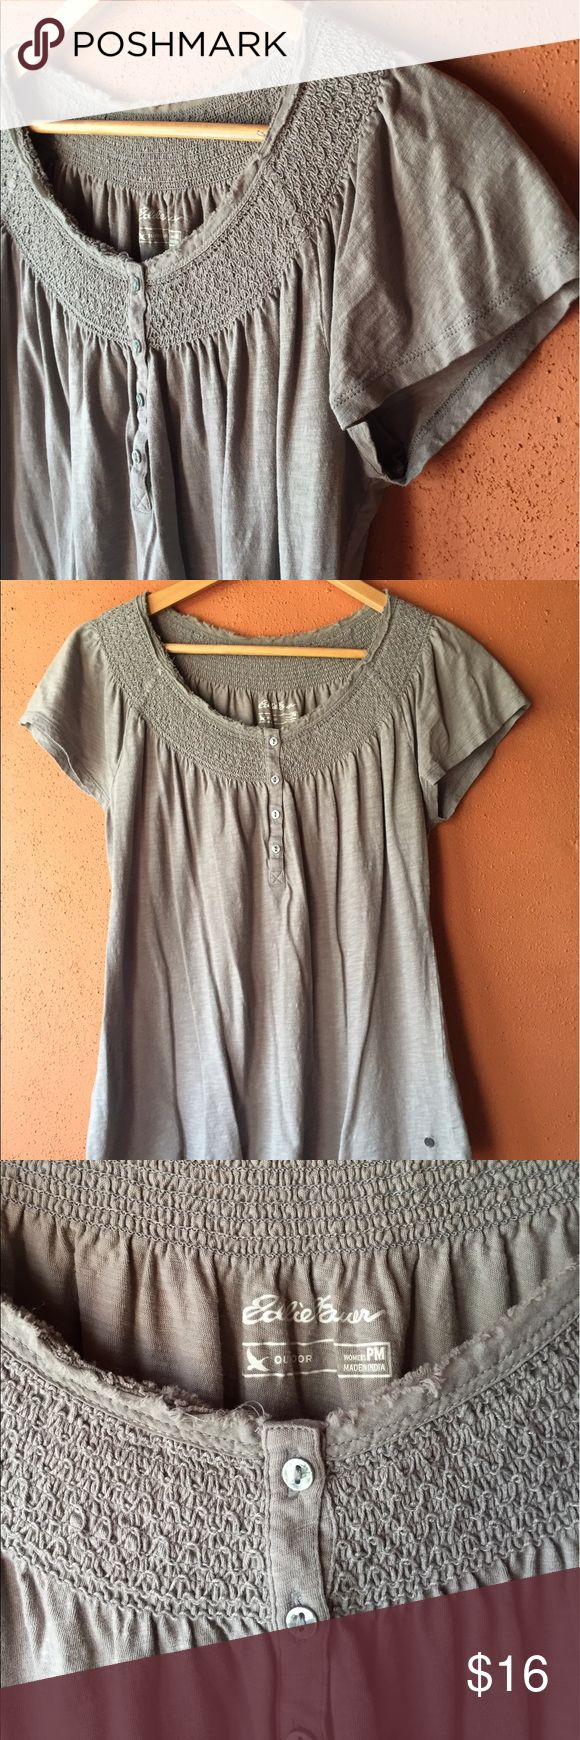 Eddie Bauer petite tee Sweet little tee in petite size medium from Eddie Bauer.  100% cotton, gray.  Super soft, please note that the style is intentionally distressed.  Very good used condition from my smoke free, pet free home! Eddie Bauer Tops